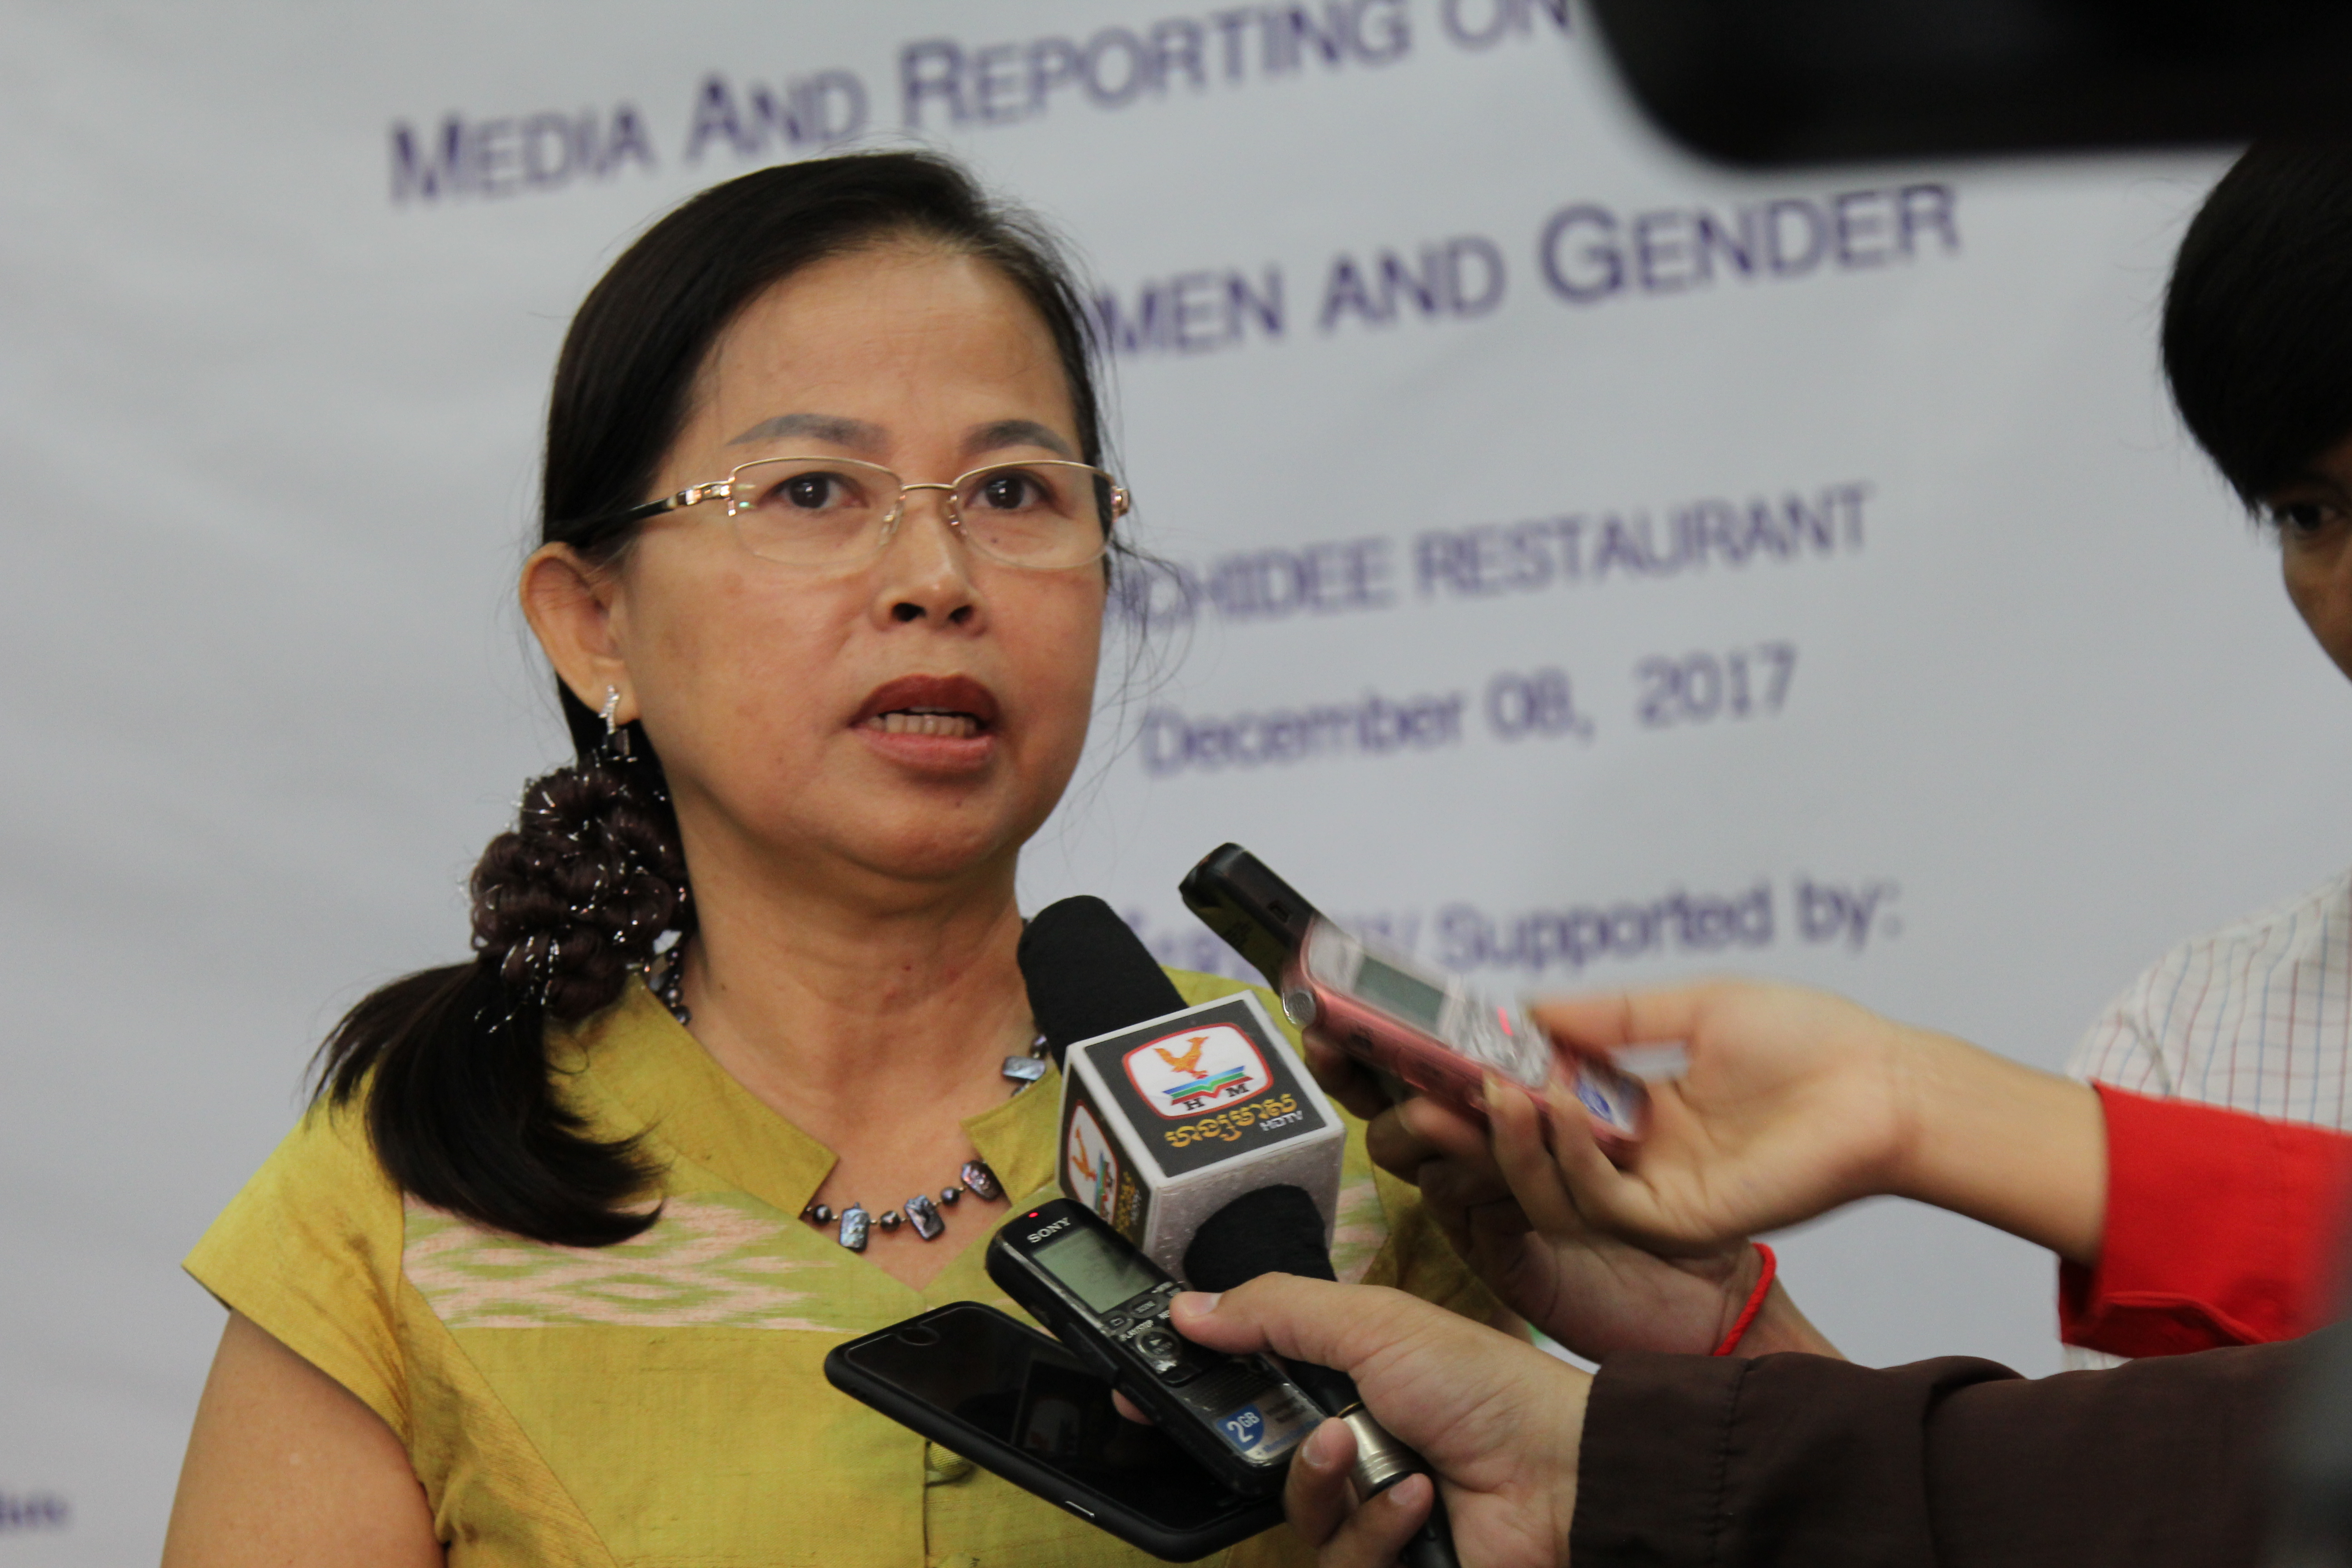 Media workshop, reporting on violence against women and girls